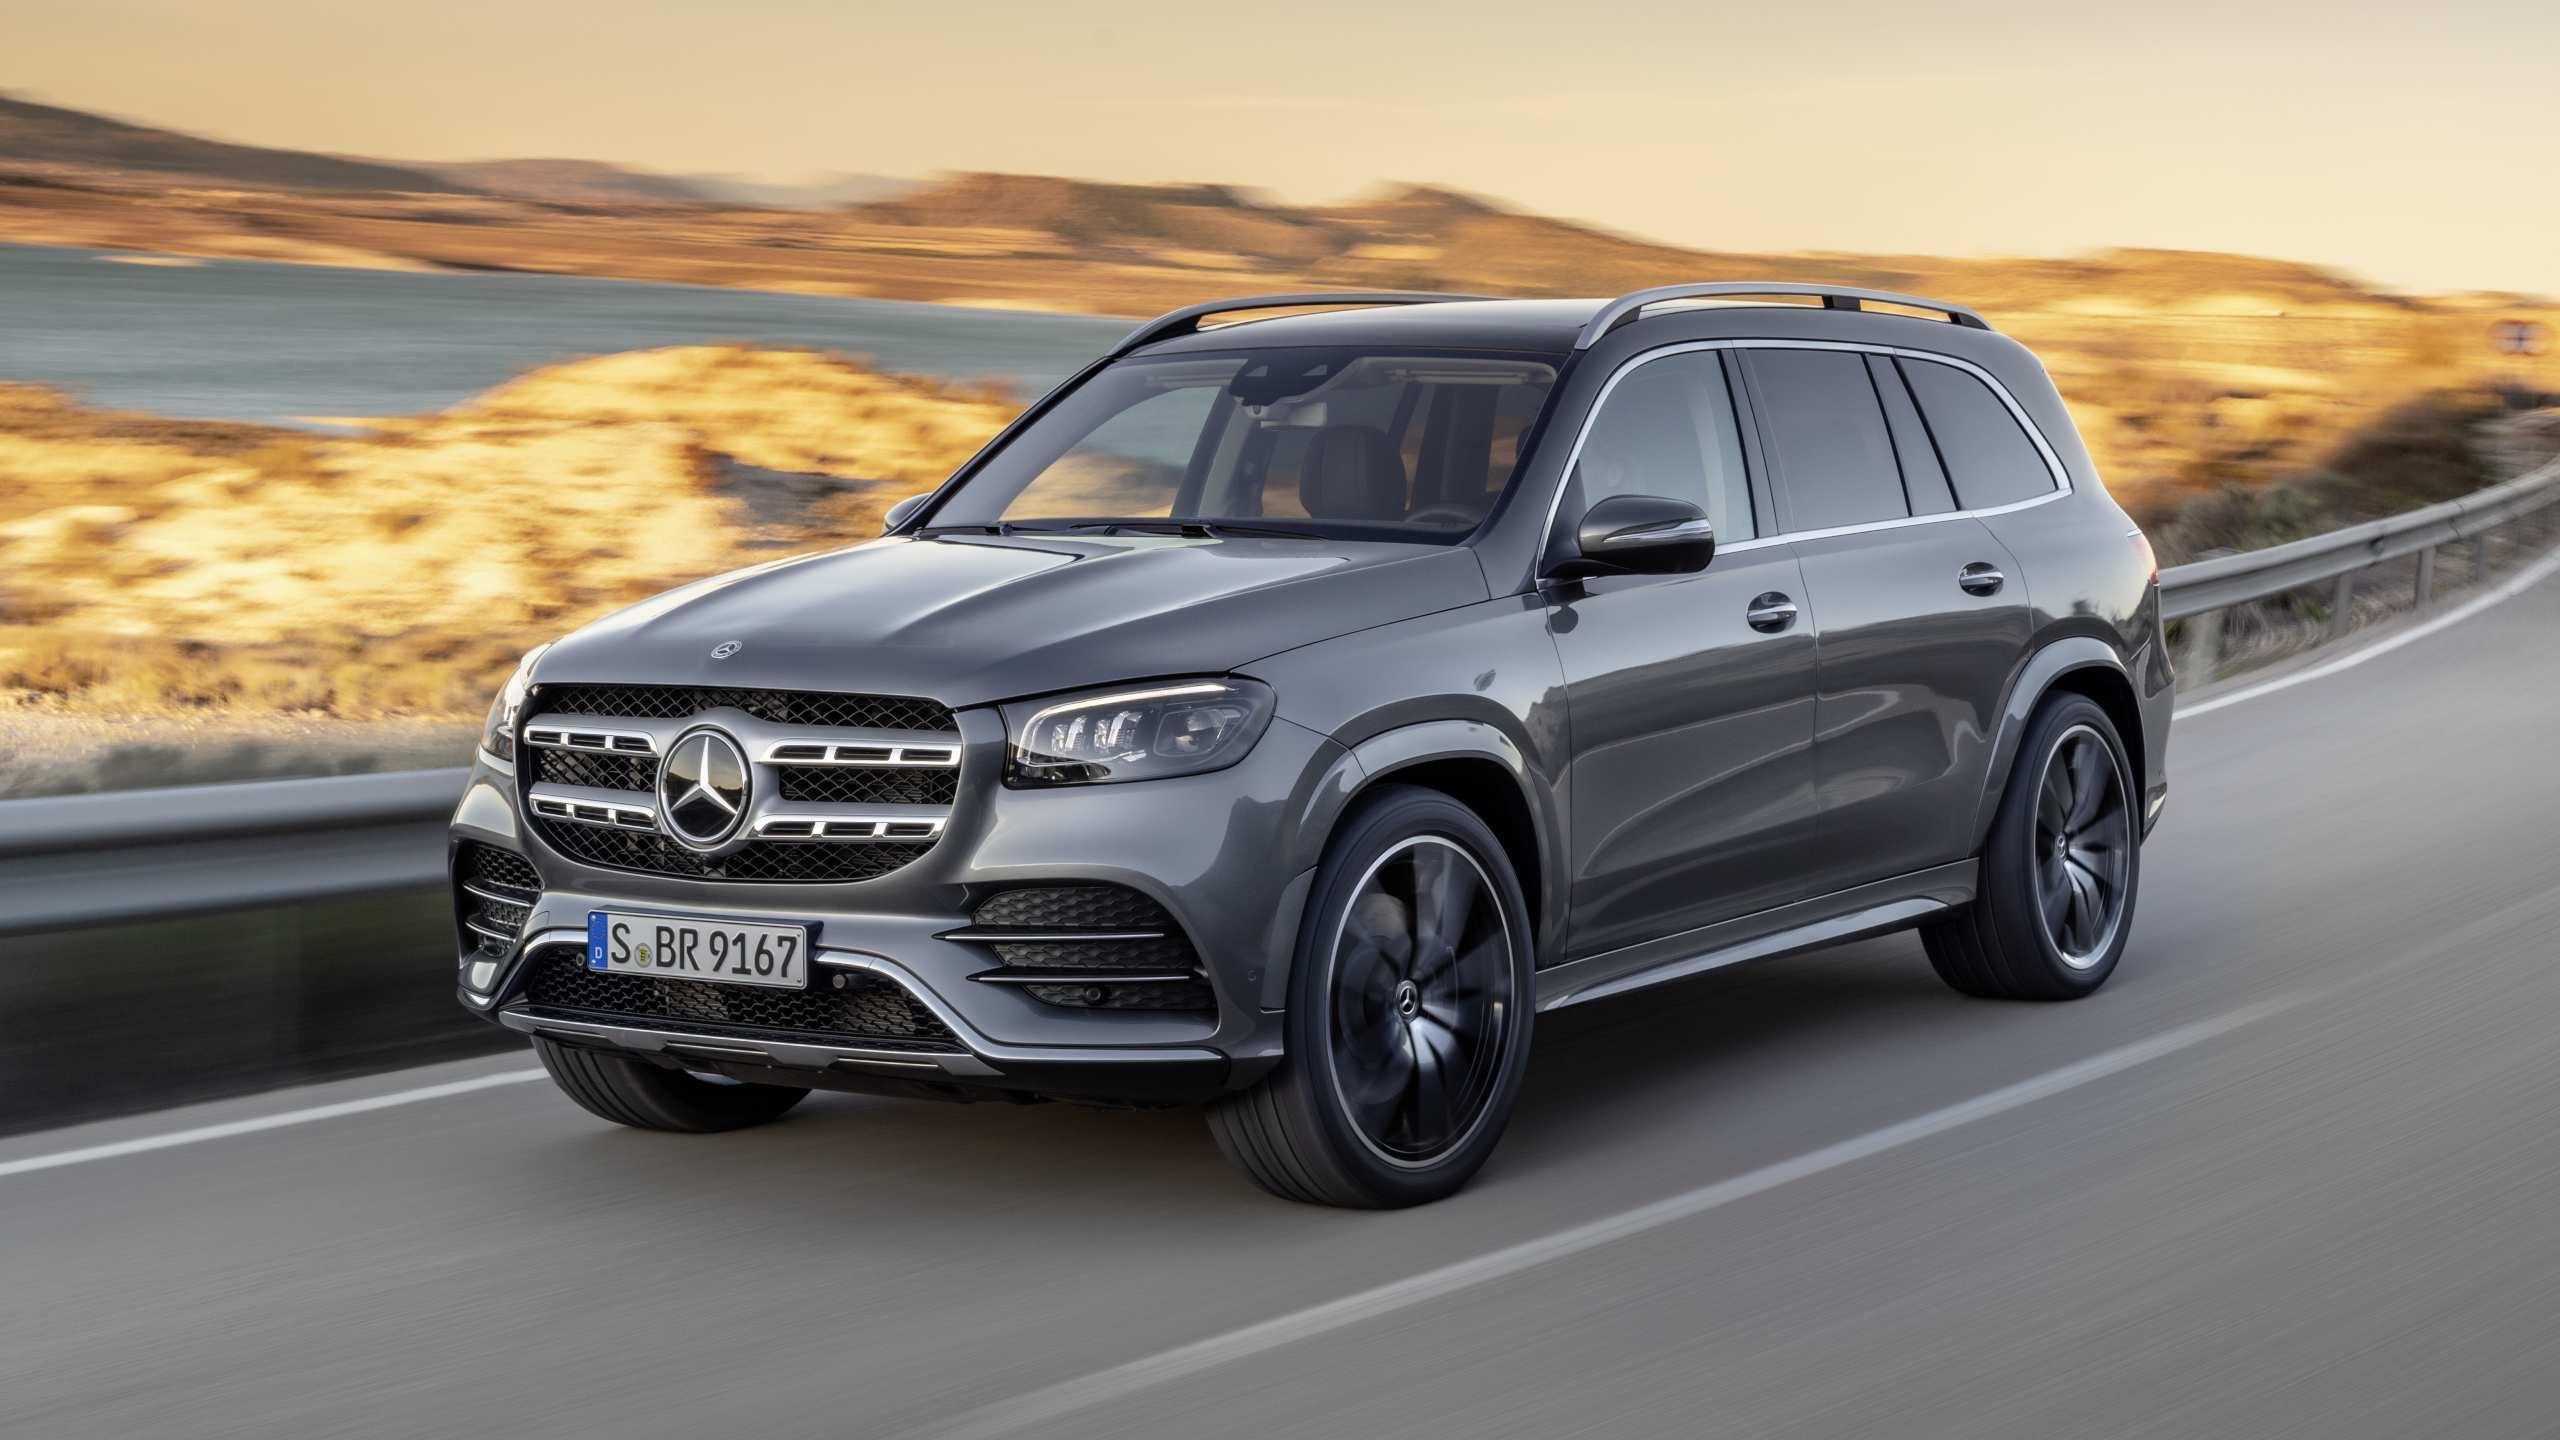 84 The Best Gls Mercedes 2019 Model